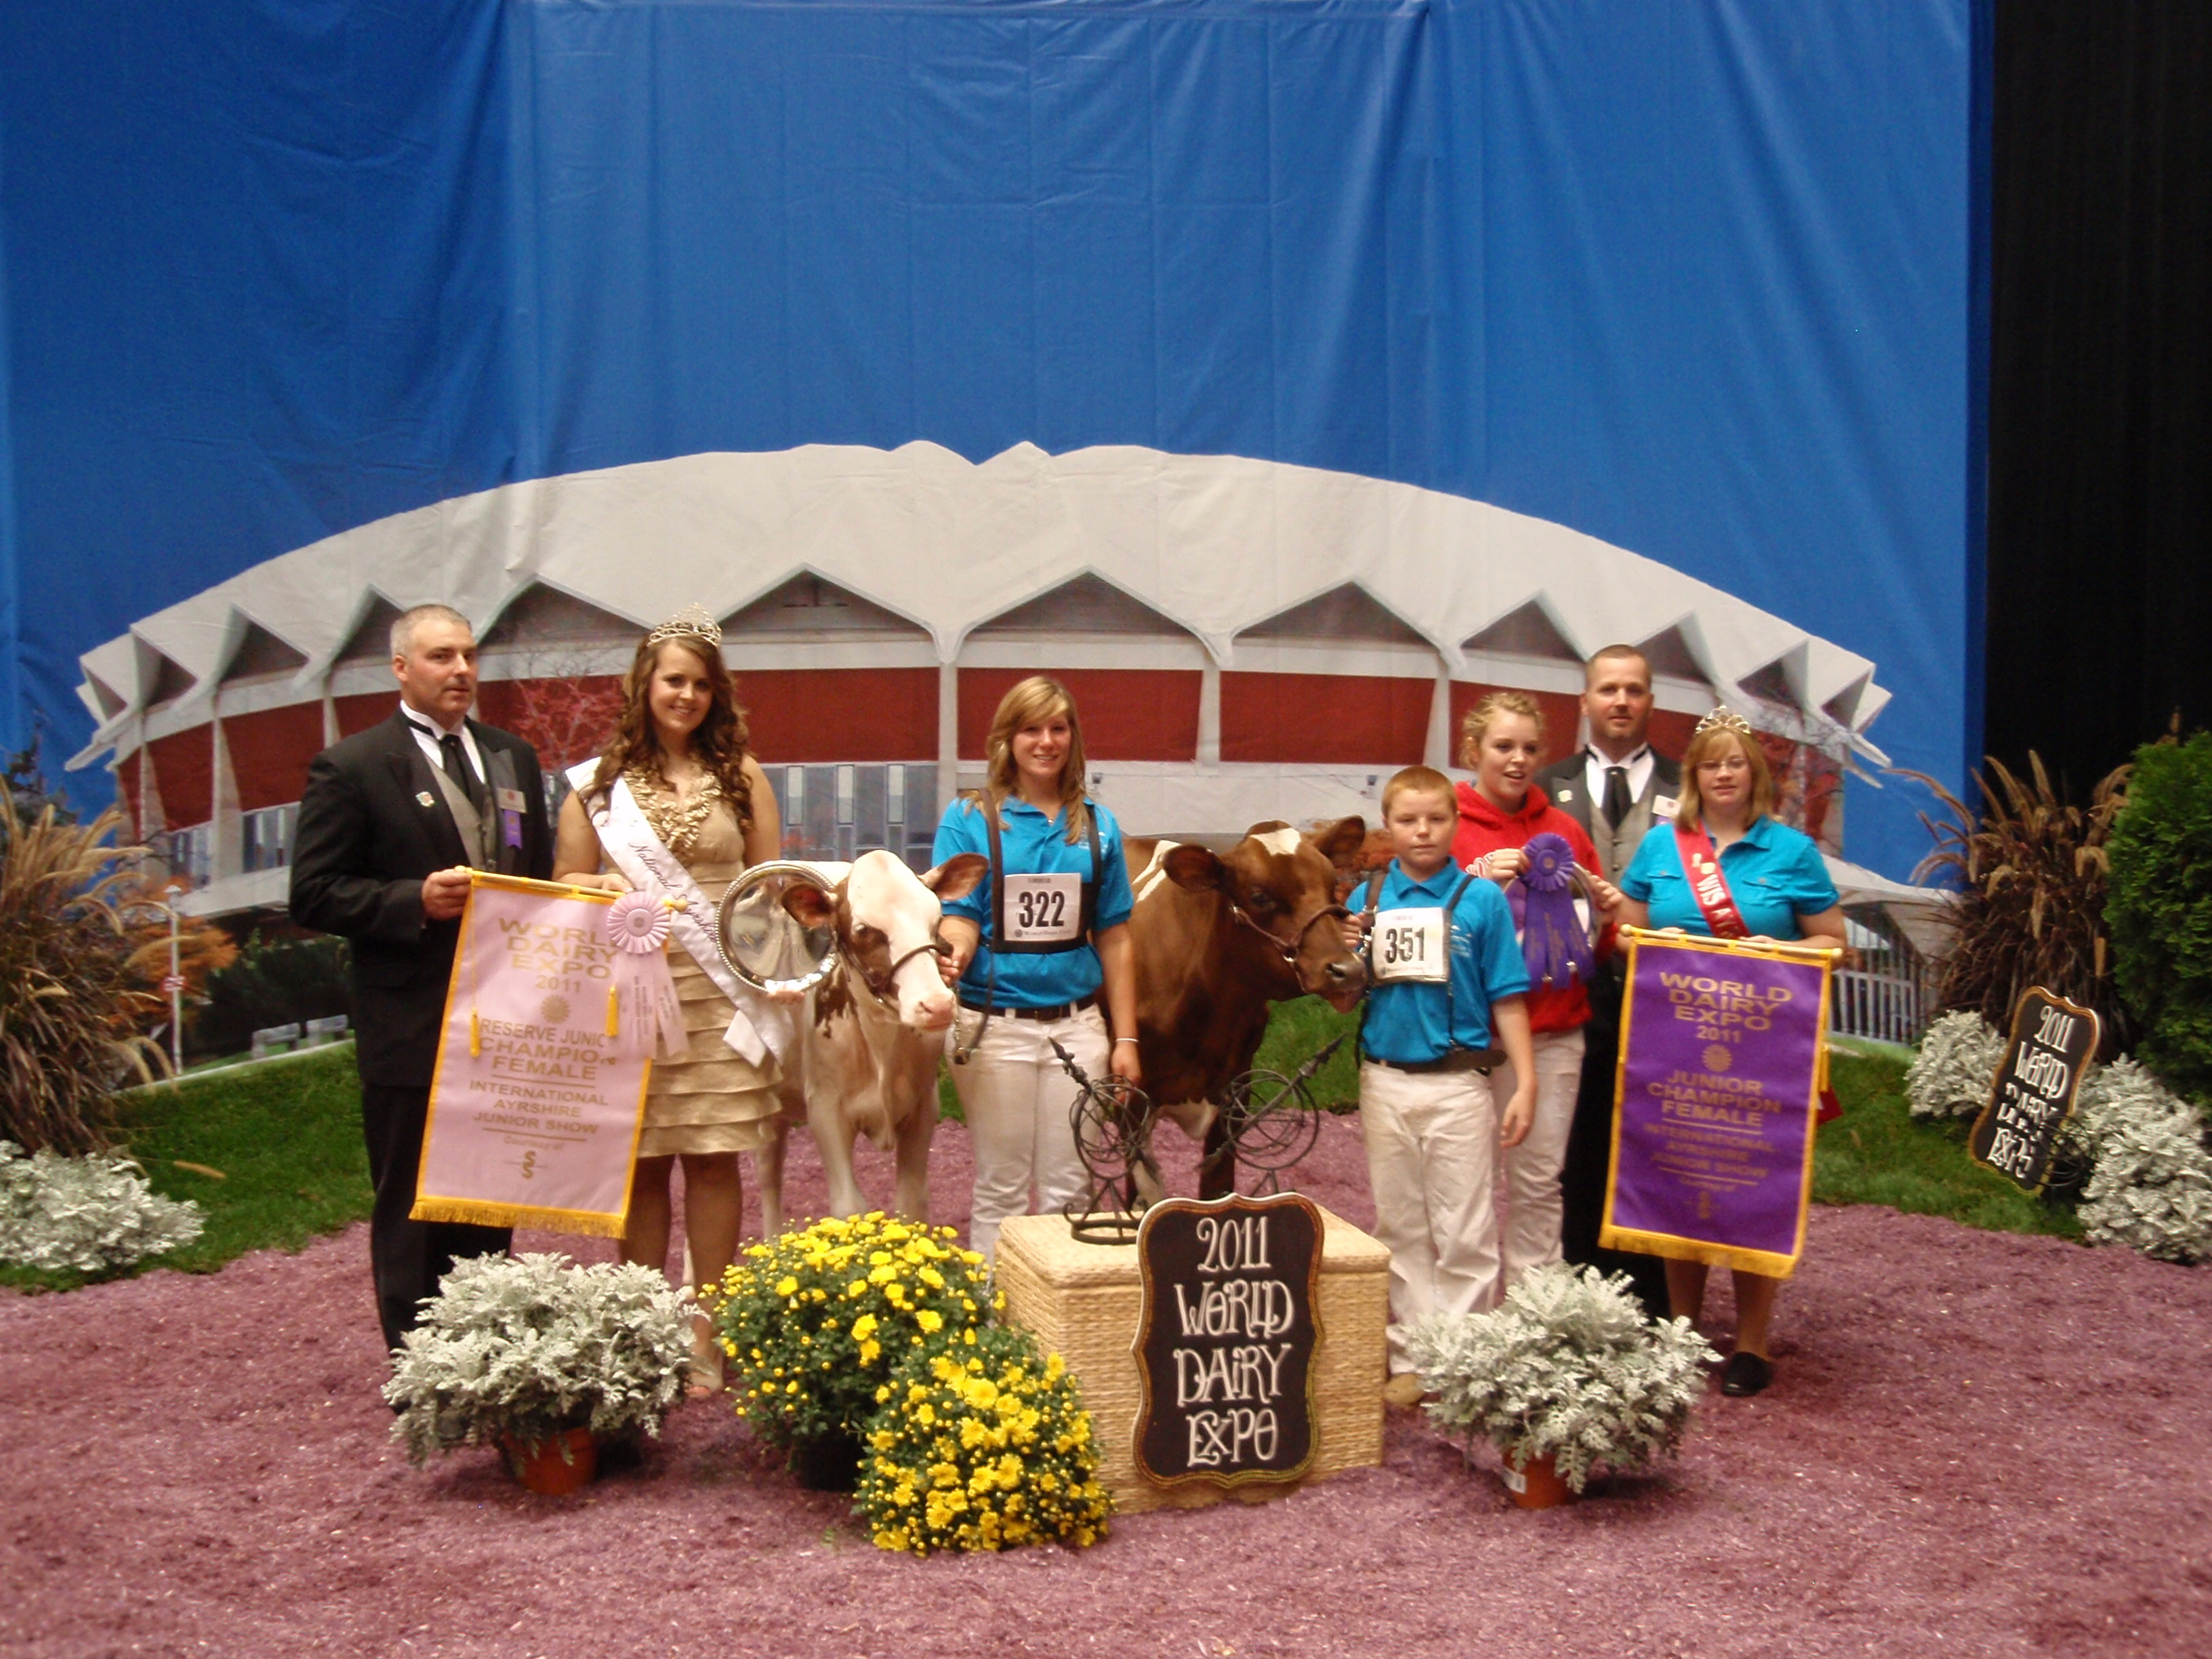 Darcy was Reserve Junior Champion (Junior Show) at the 2011 WDE.